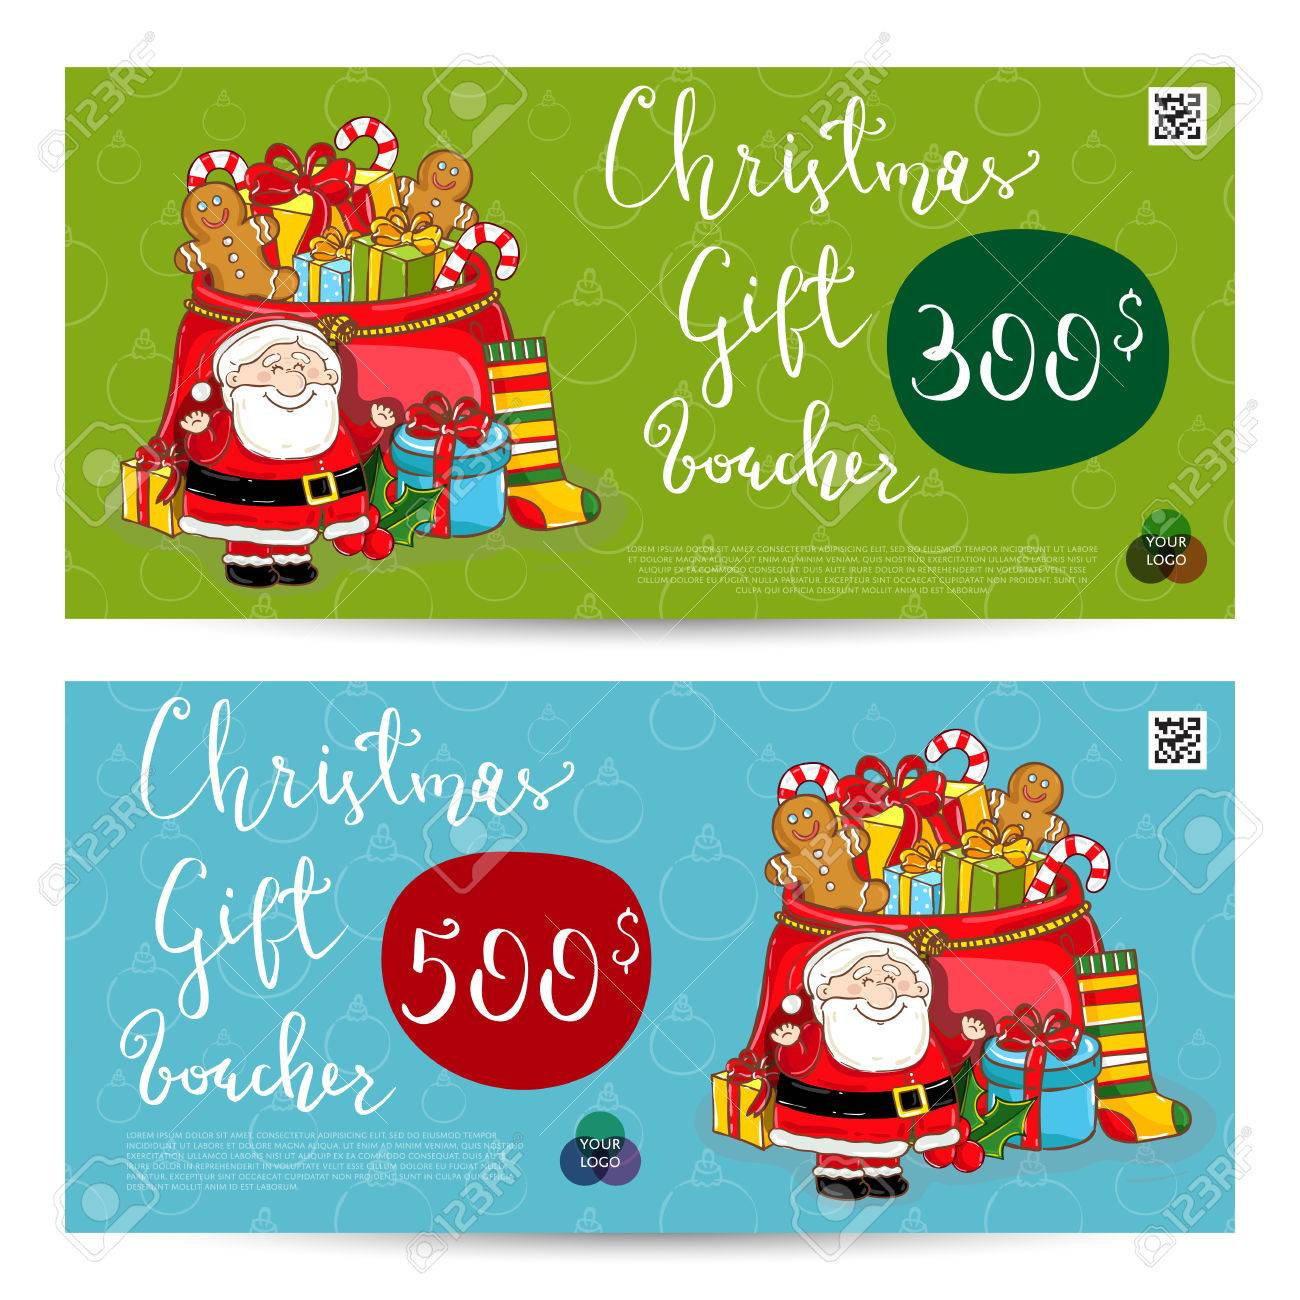 Christmas Gift Voucher Template. Gift Coupon With Xmas Attributes And  Prepaid Sum. Santa,  Christmas Gift Vouchers Templates